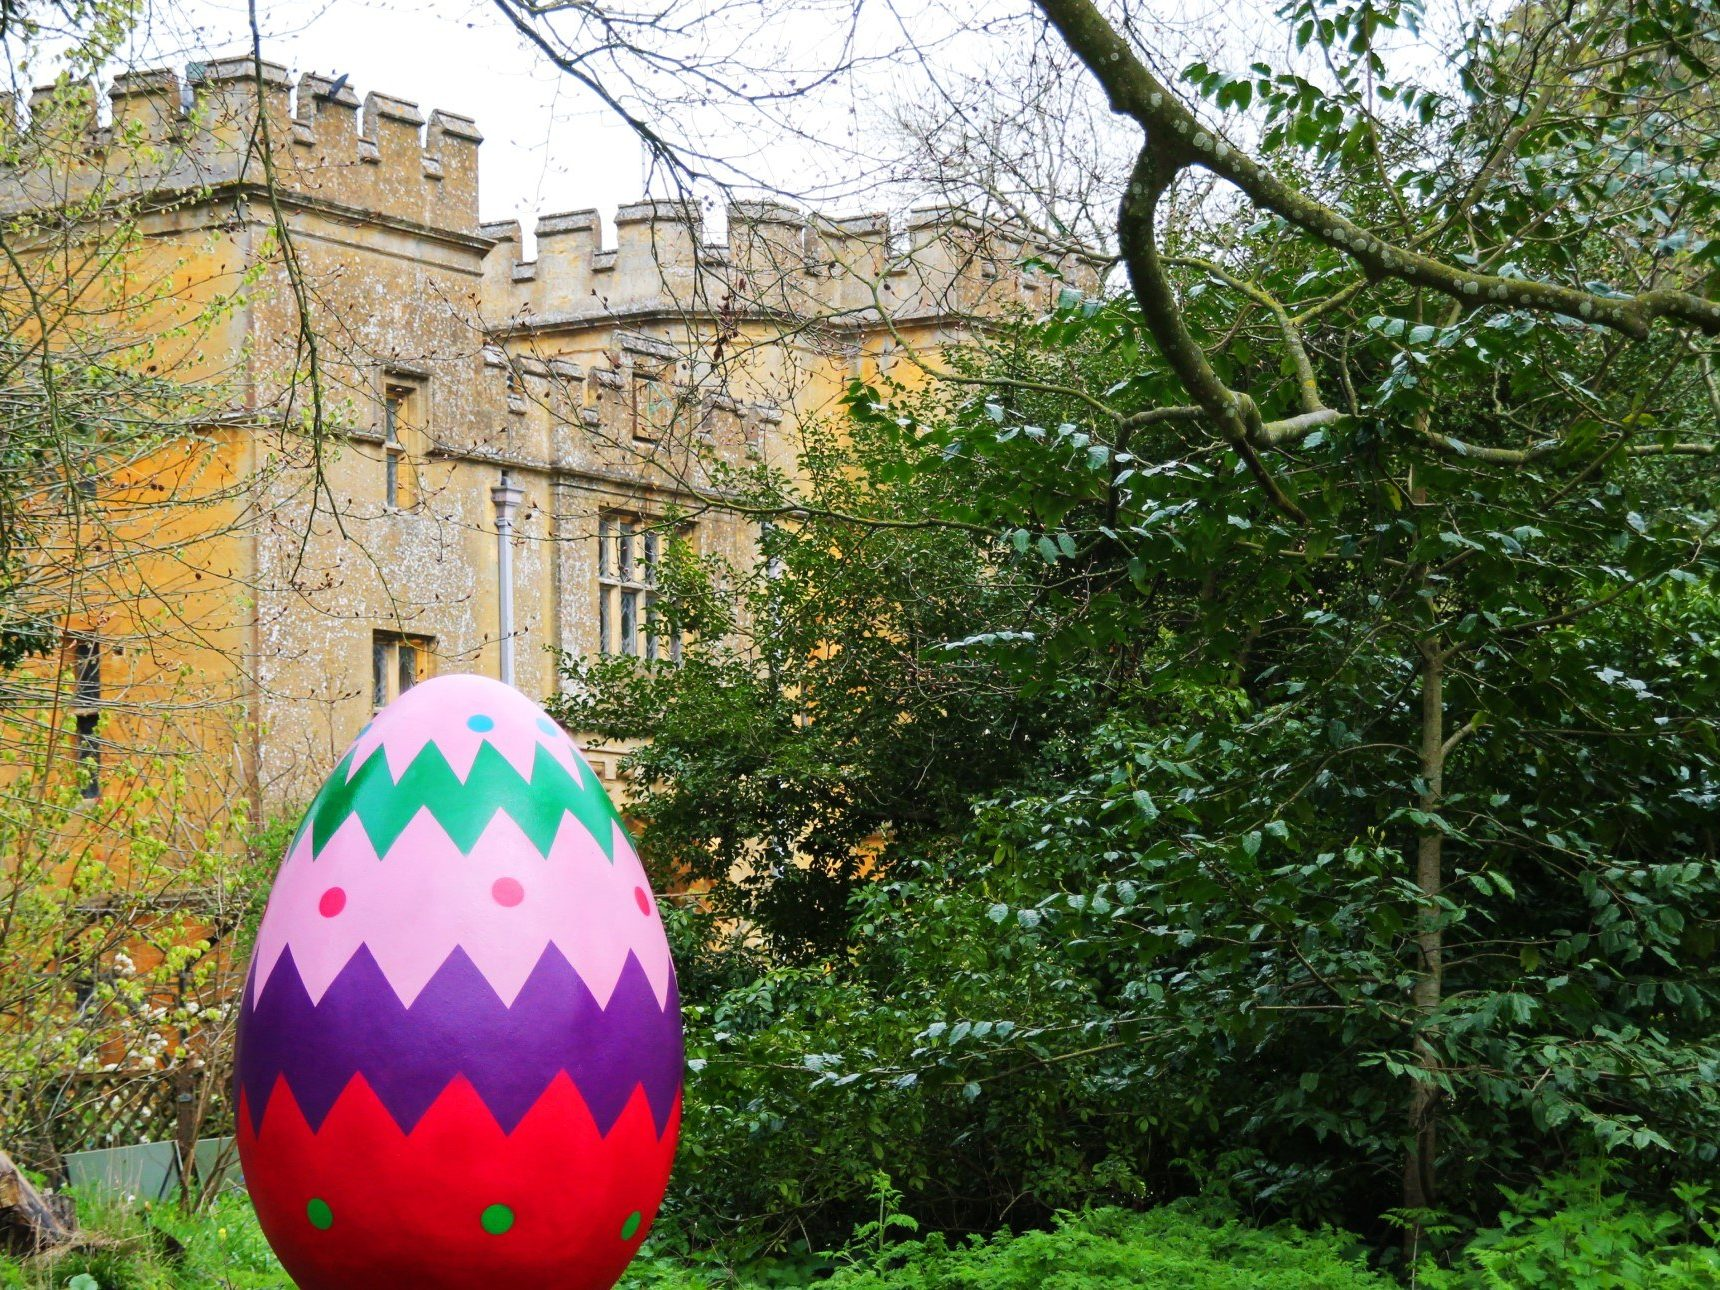 Giant Egg in front of castle gatehouse